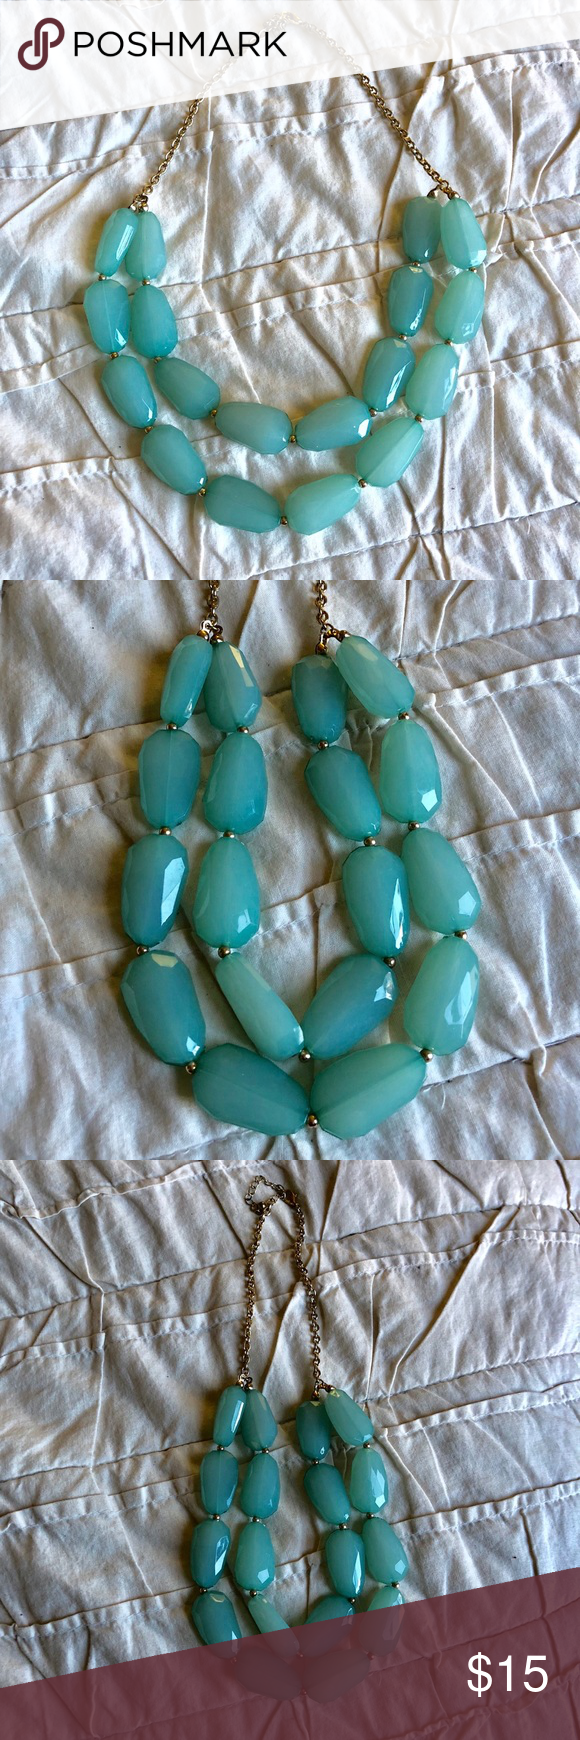 Jade color beaded necklace From the top of the chain to the bottom of the second string of beads the distance is 10inches. The beads are a lovely jade color. They are made of plastic Jewelry Necklaces